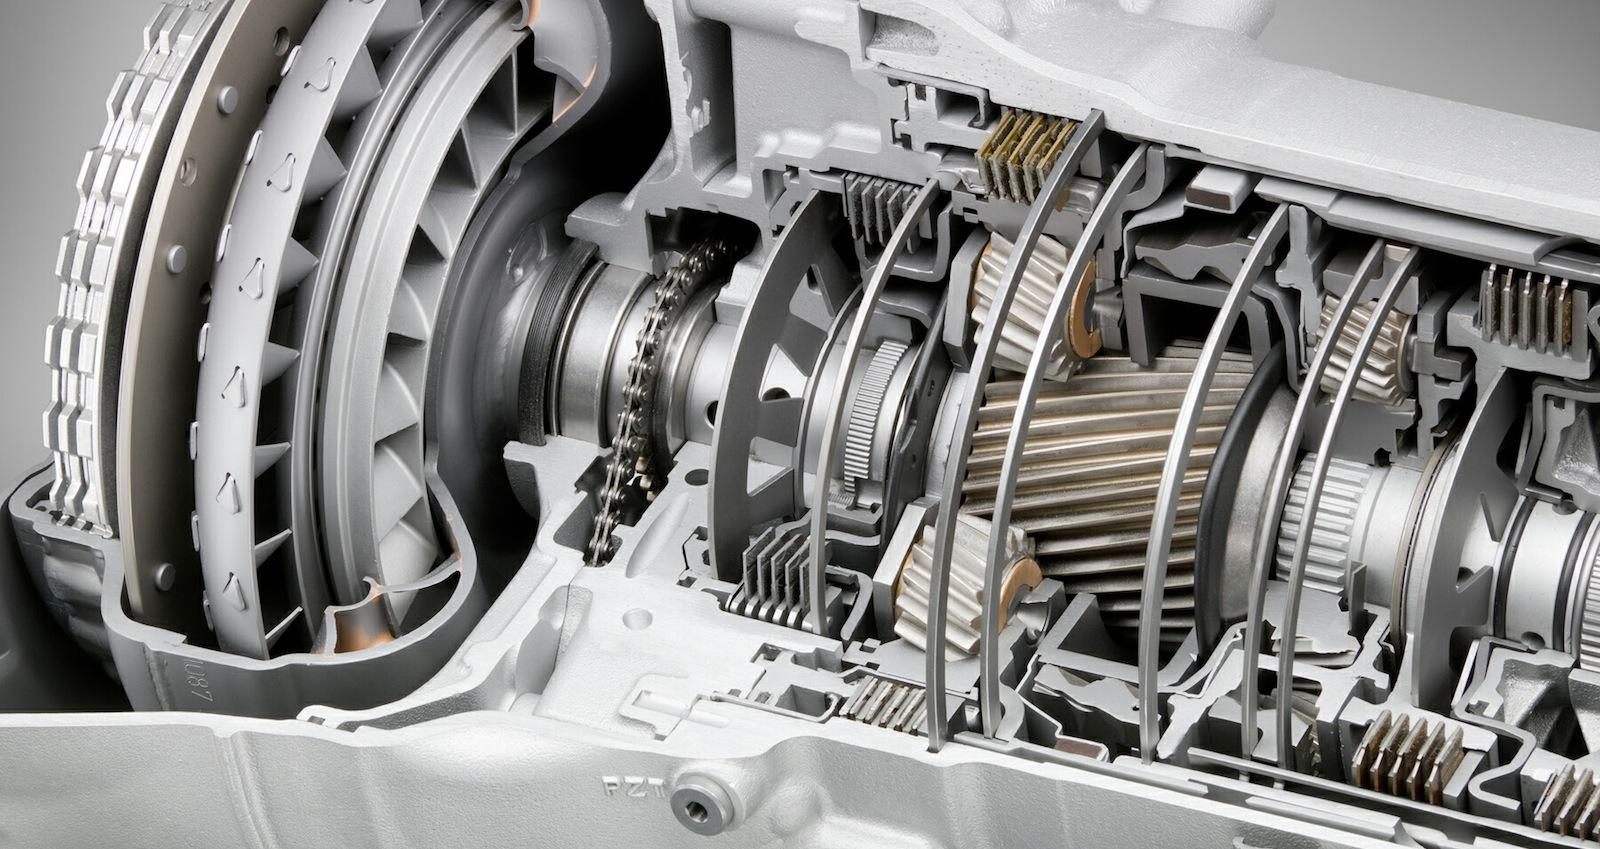 7 Things To Avoid While Driving An Automatic Transmission Car Speed How It Works Diagram Cut Away Gears Gearbox